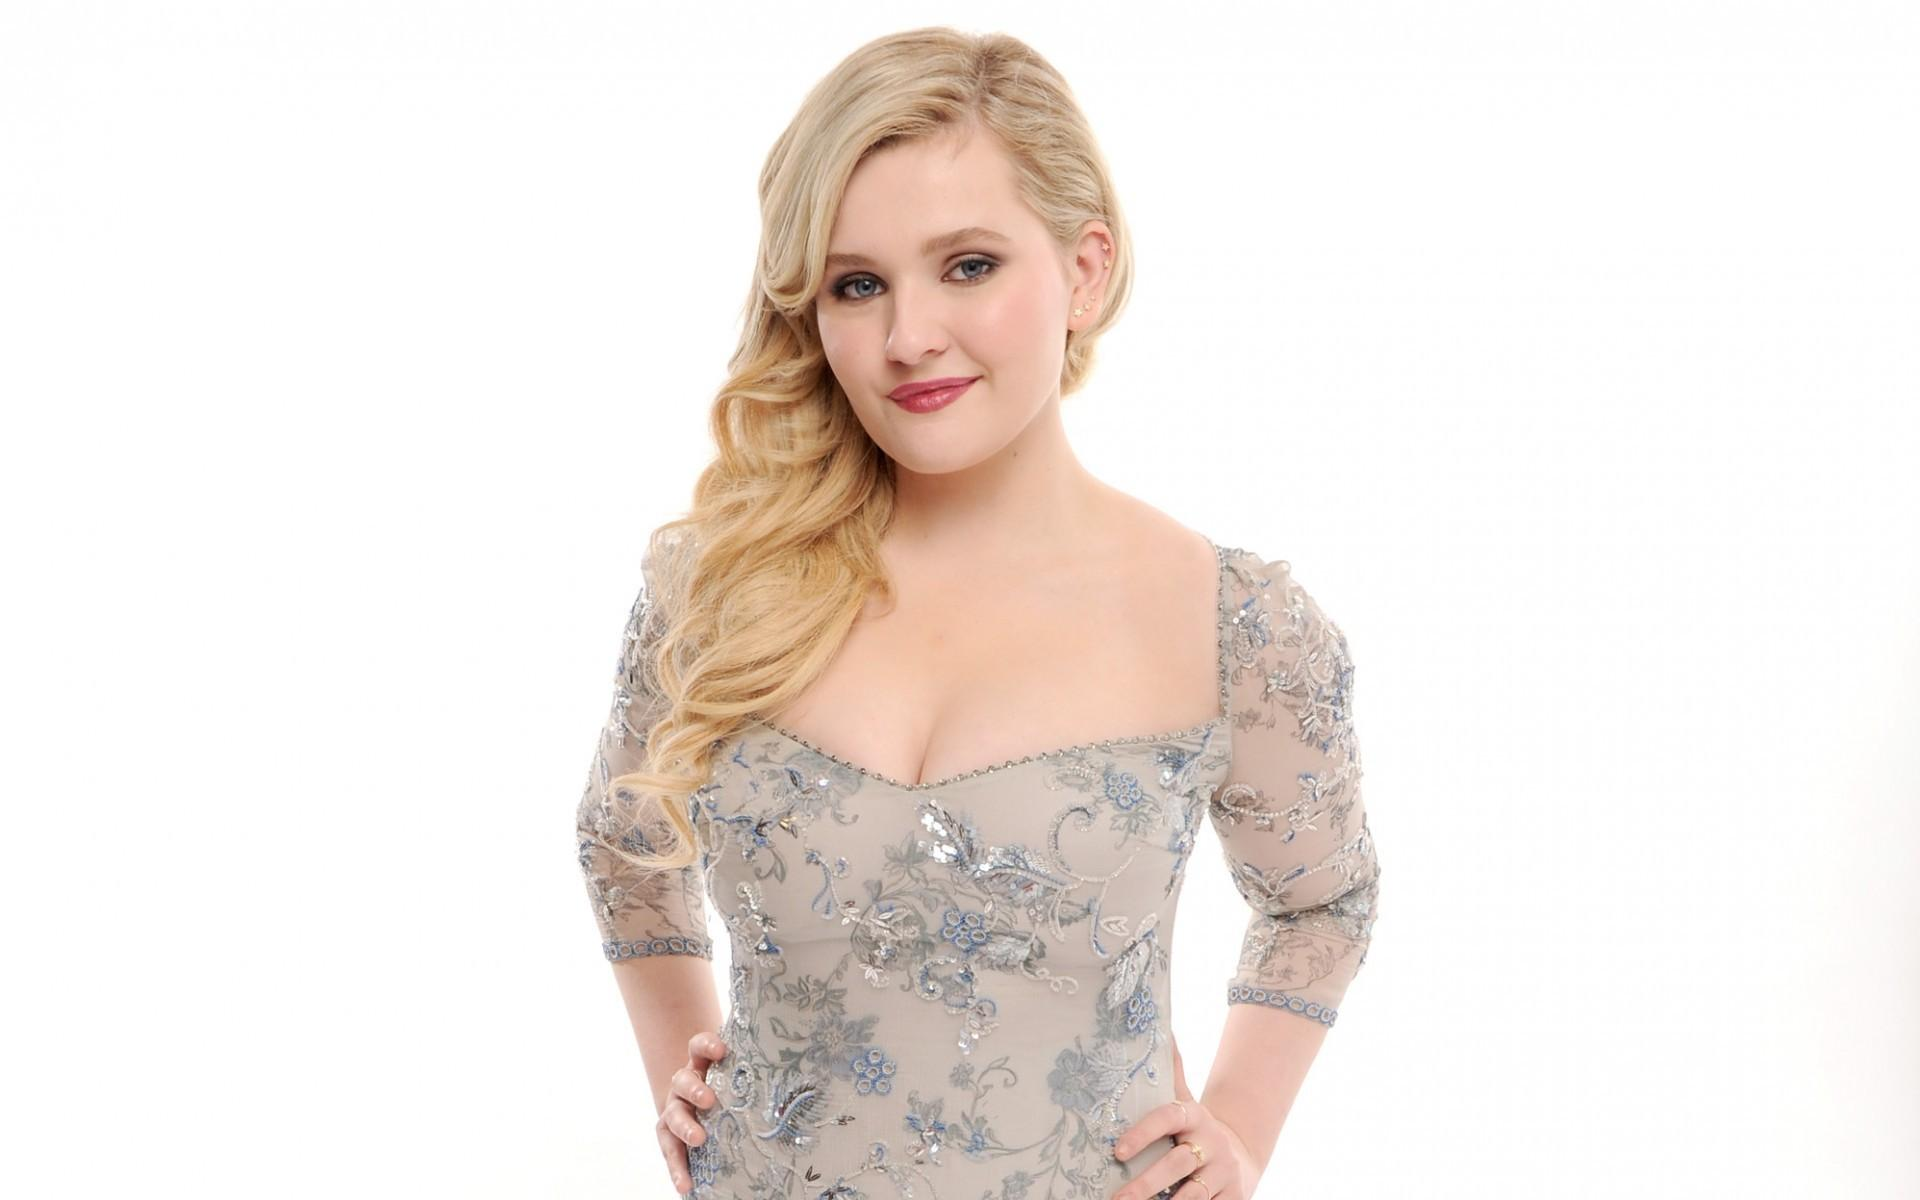 Abigail Breslin wallpaper - Abigail Breslin Movies, Age, Weight, Net Worth, Family and Wallpapers